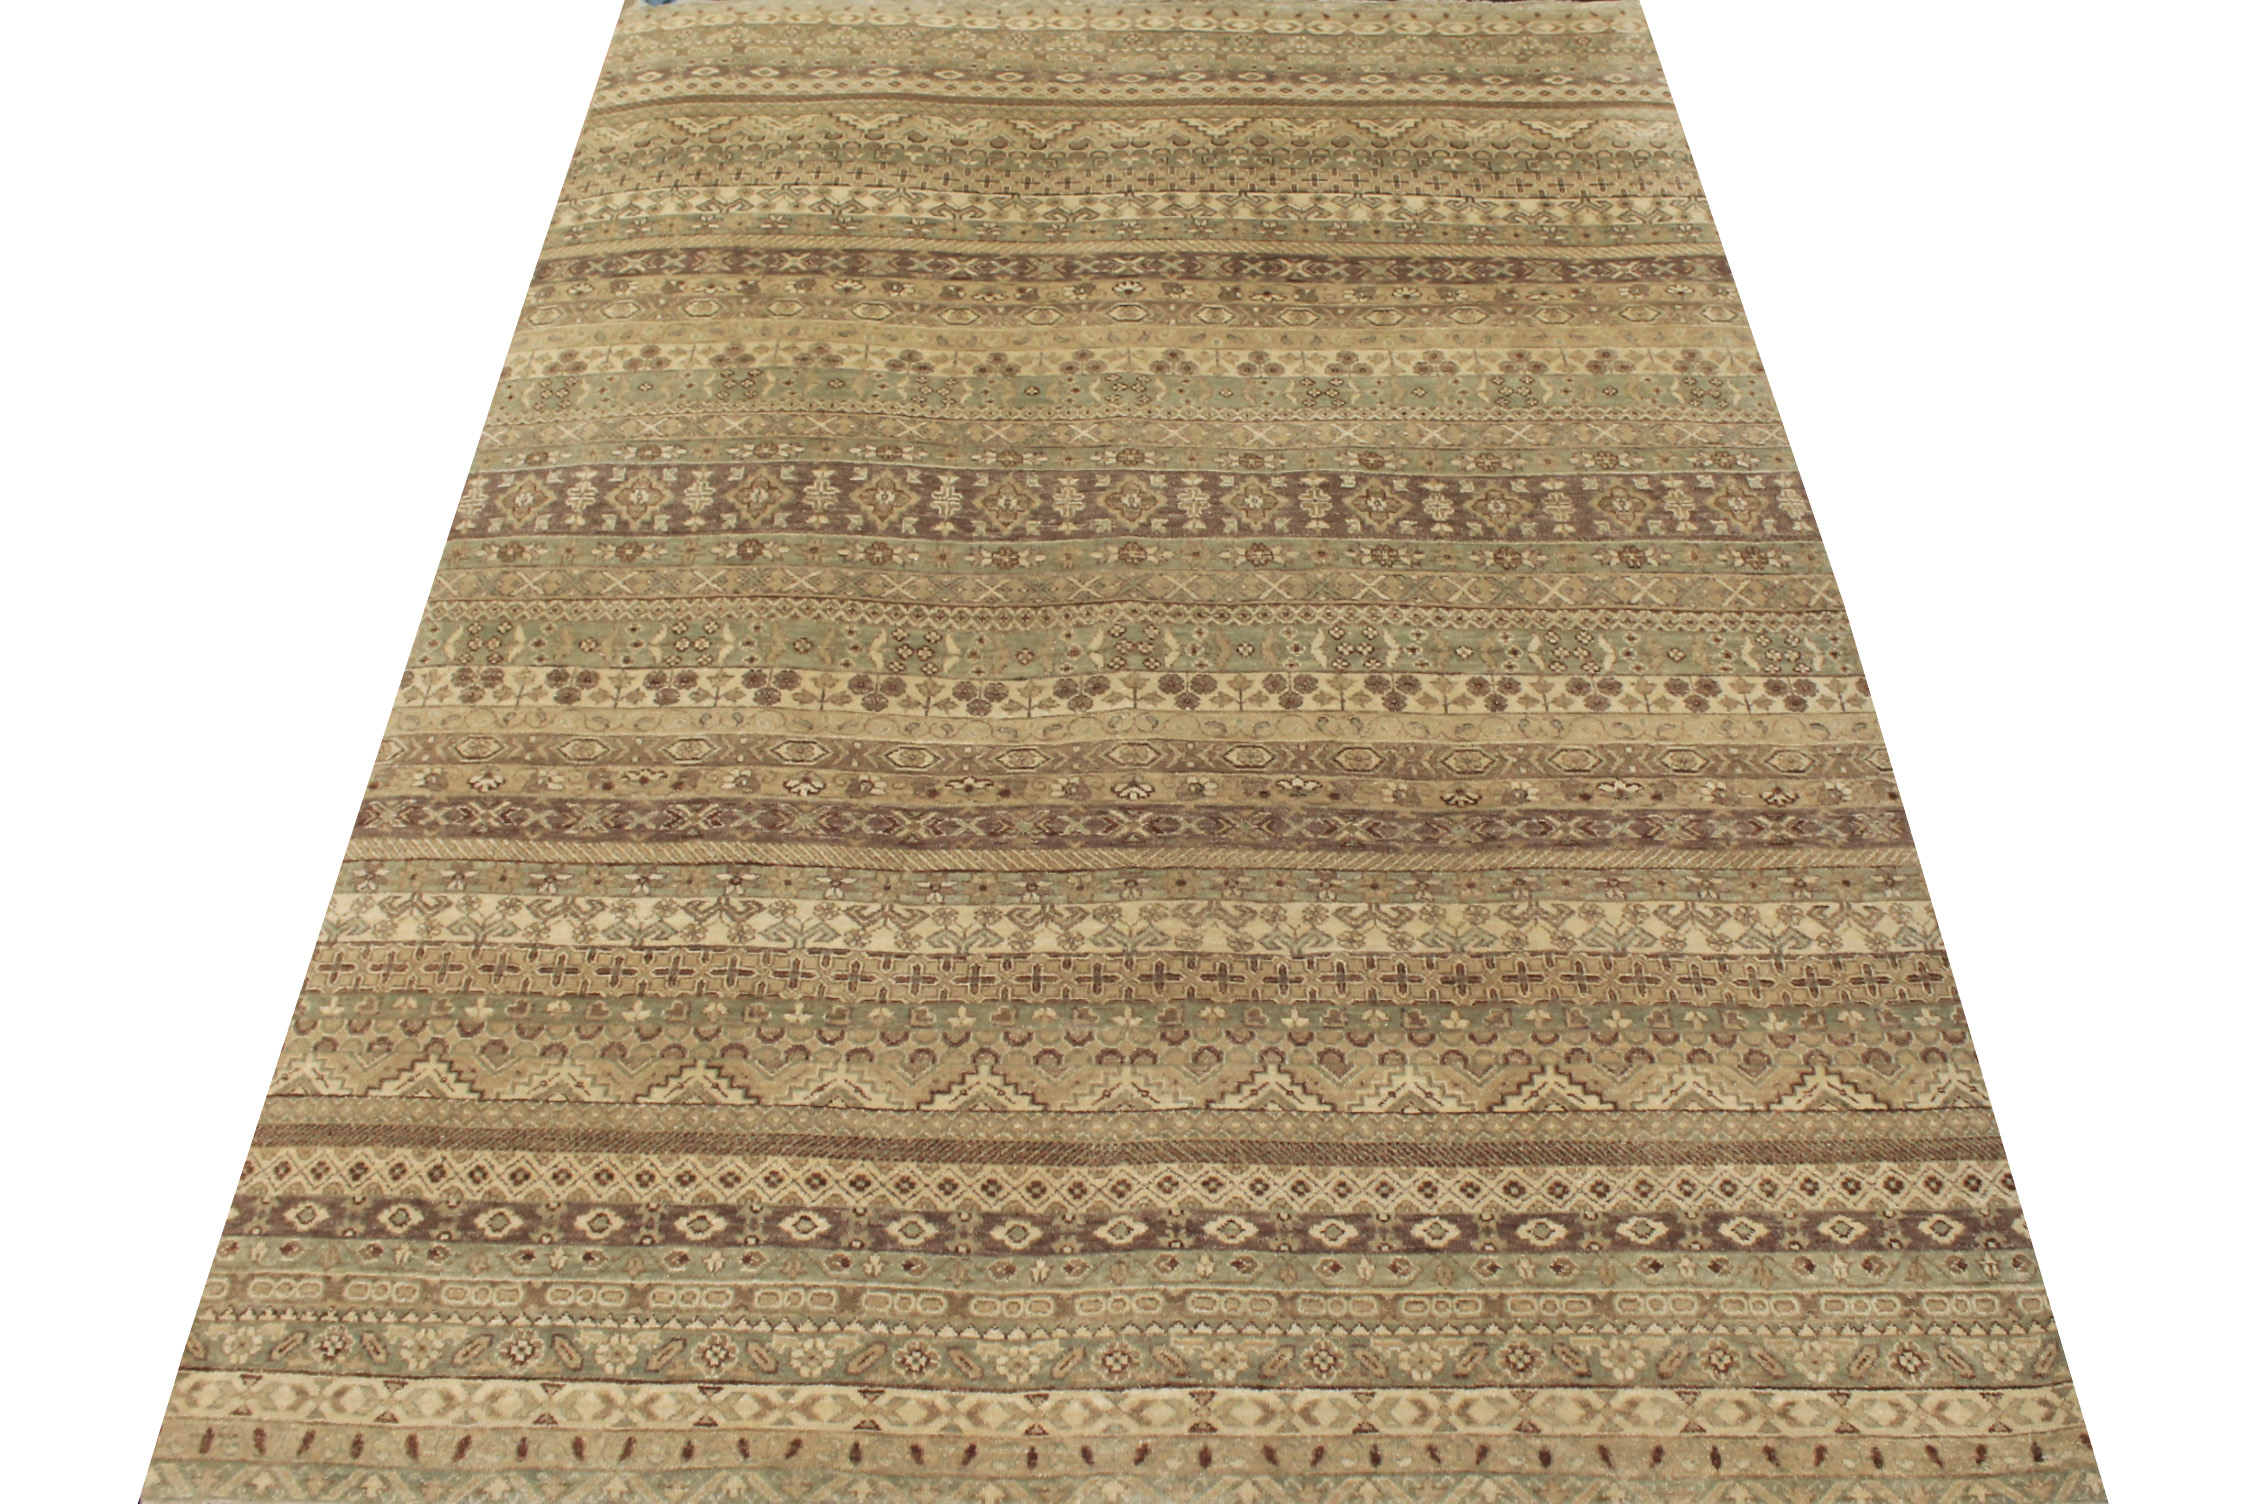 6x9 Contemporary Hand Knotted Wool Area Rug - MR13123